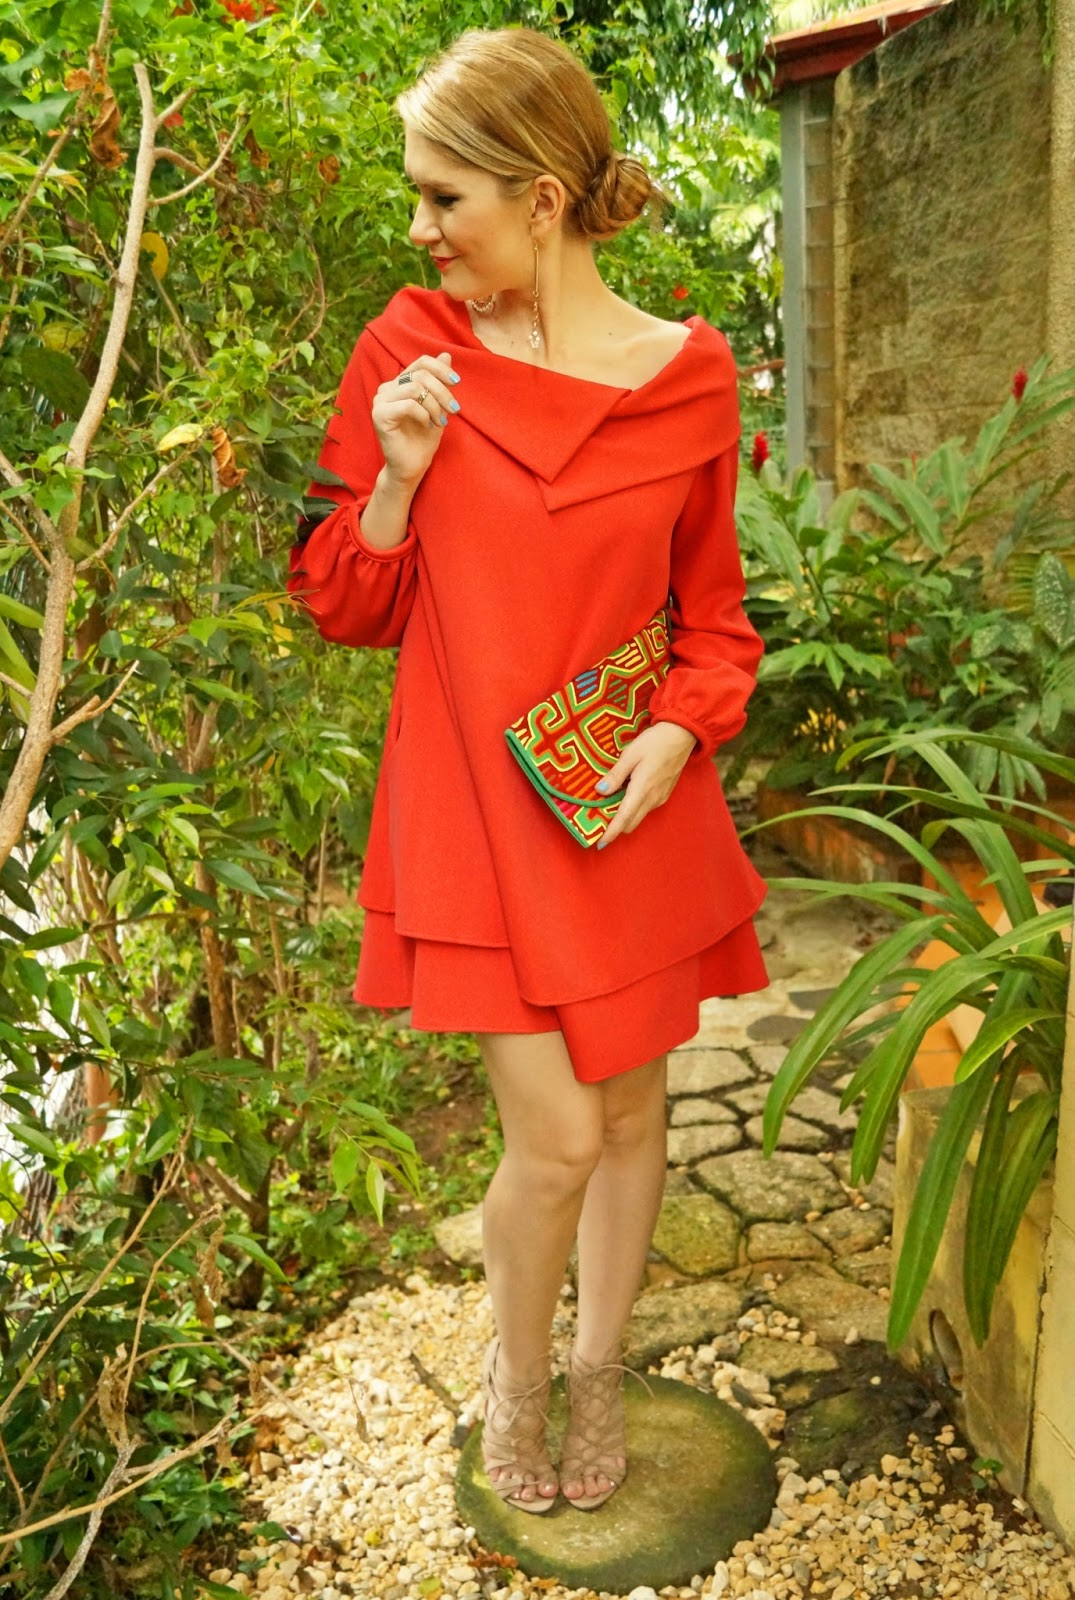 Who says fashion should be uncomfortable?! This loose red dress looks SO classy and yet so comfy!